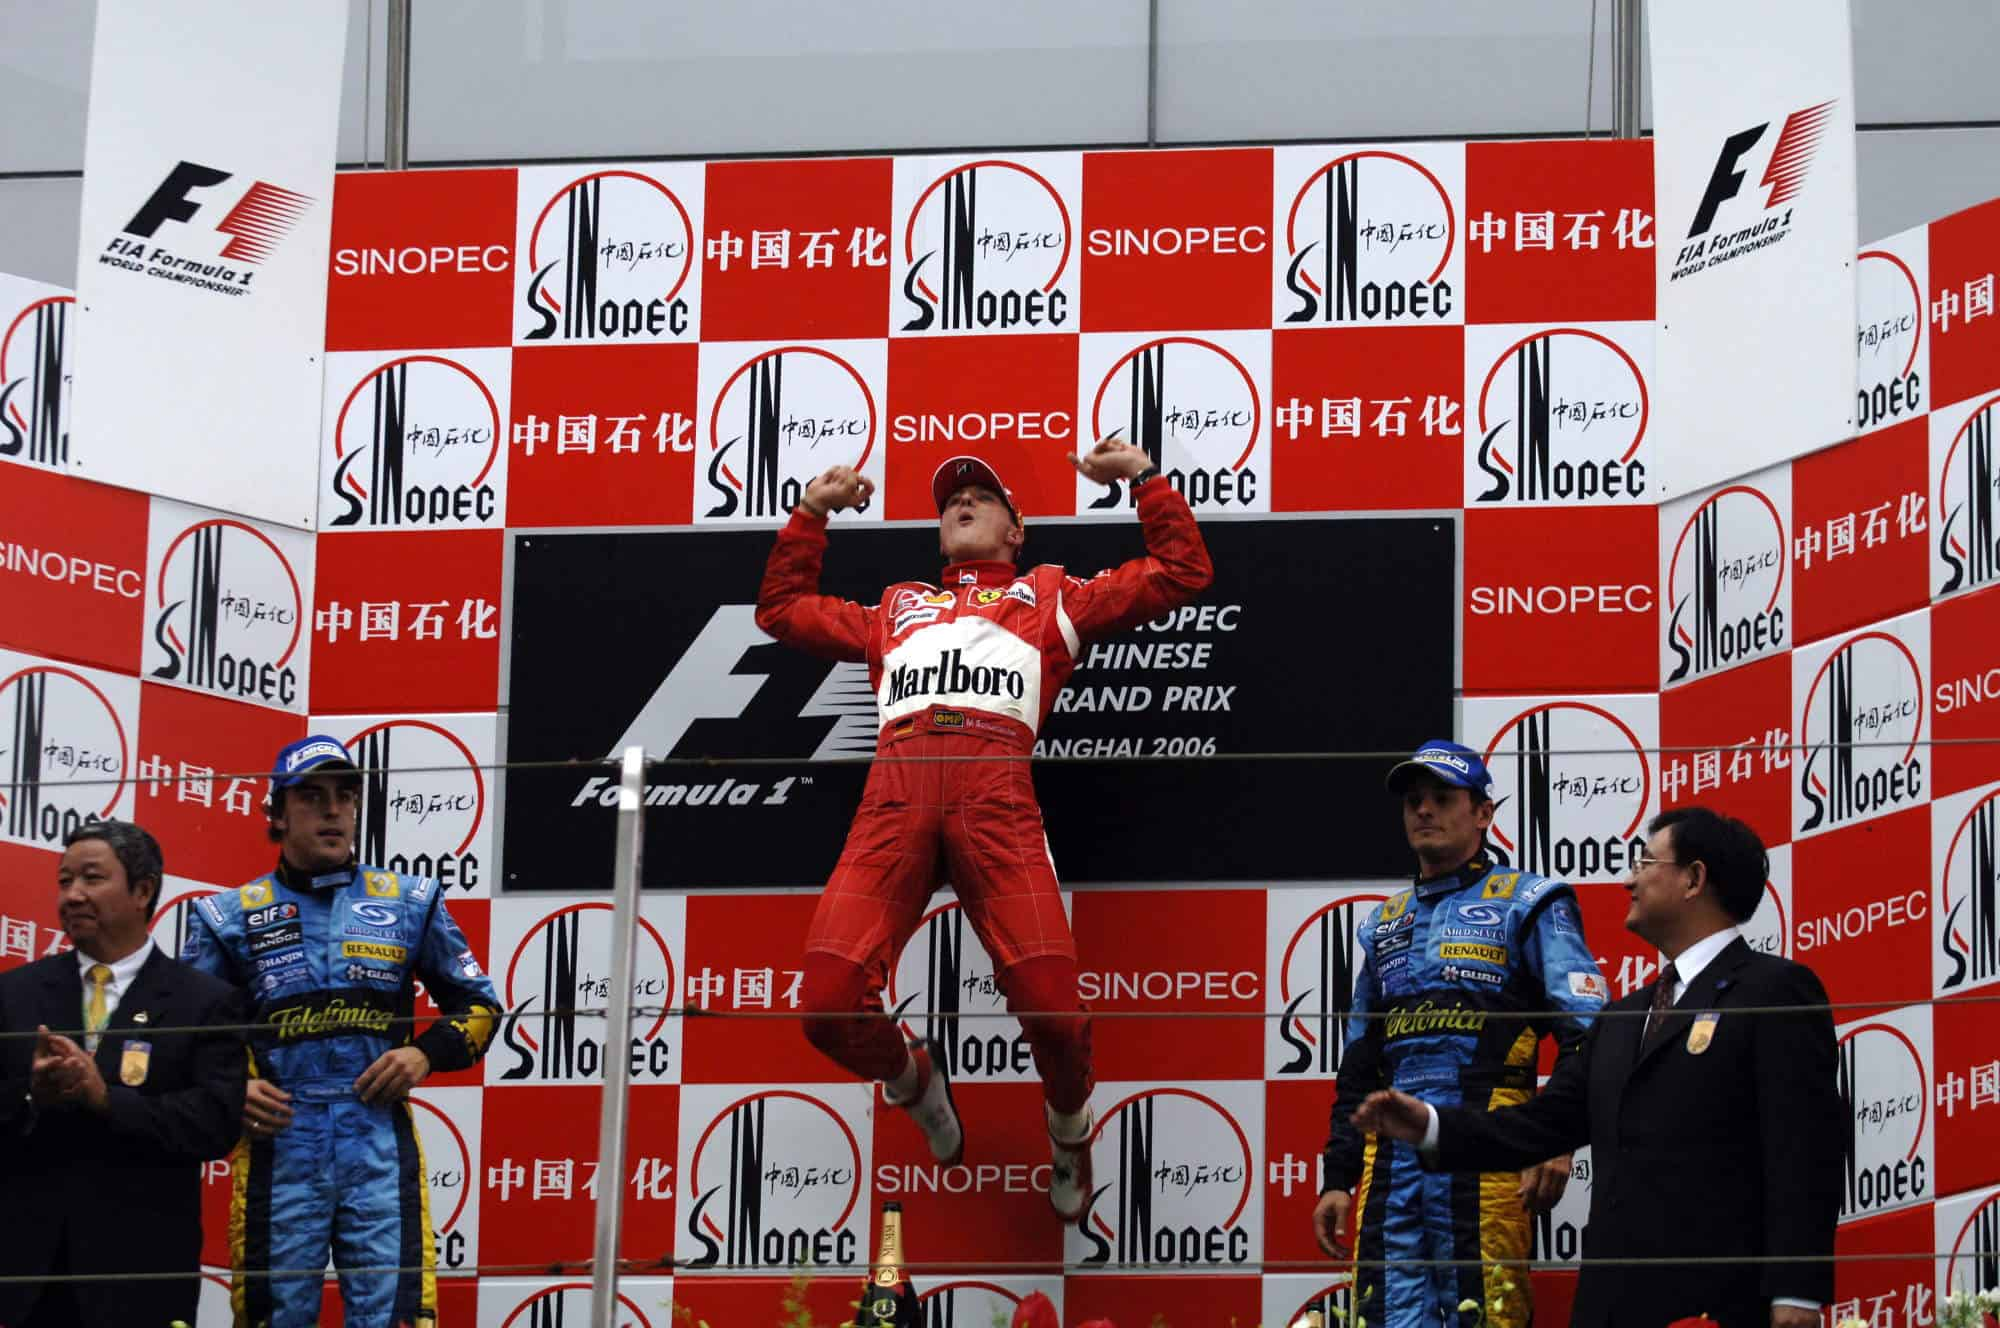 2006 Chinese GP podium Michael Schumacher last F1 win 91st Photo Ferrari